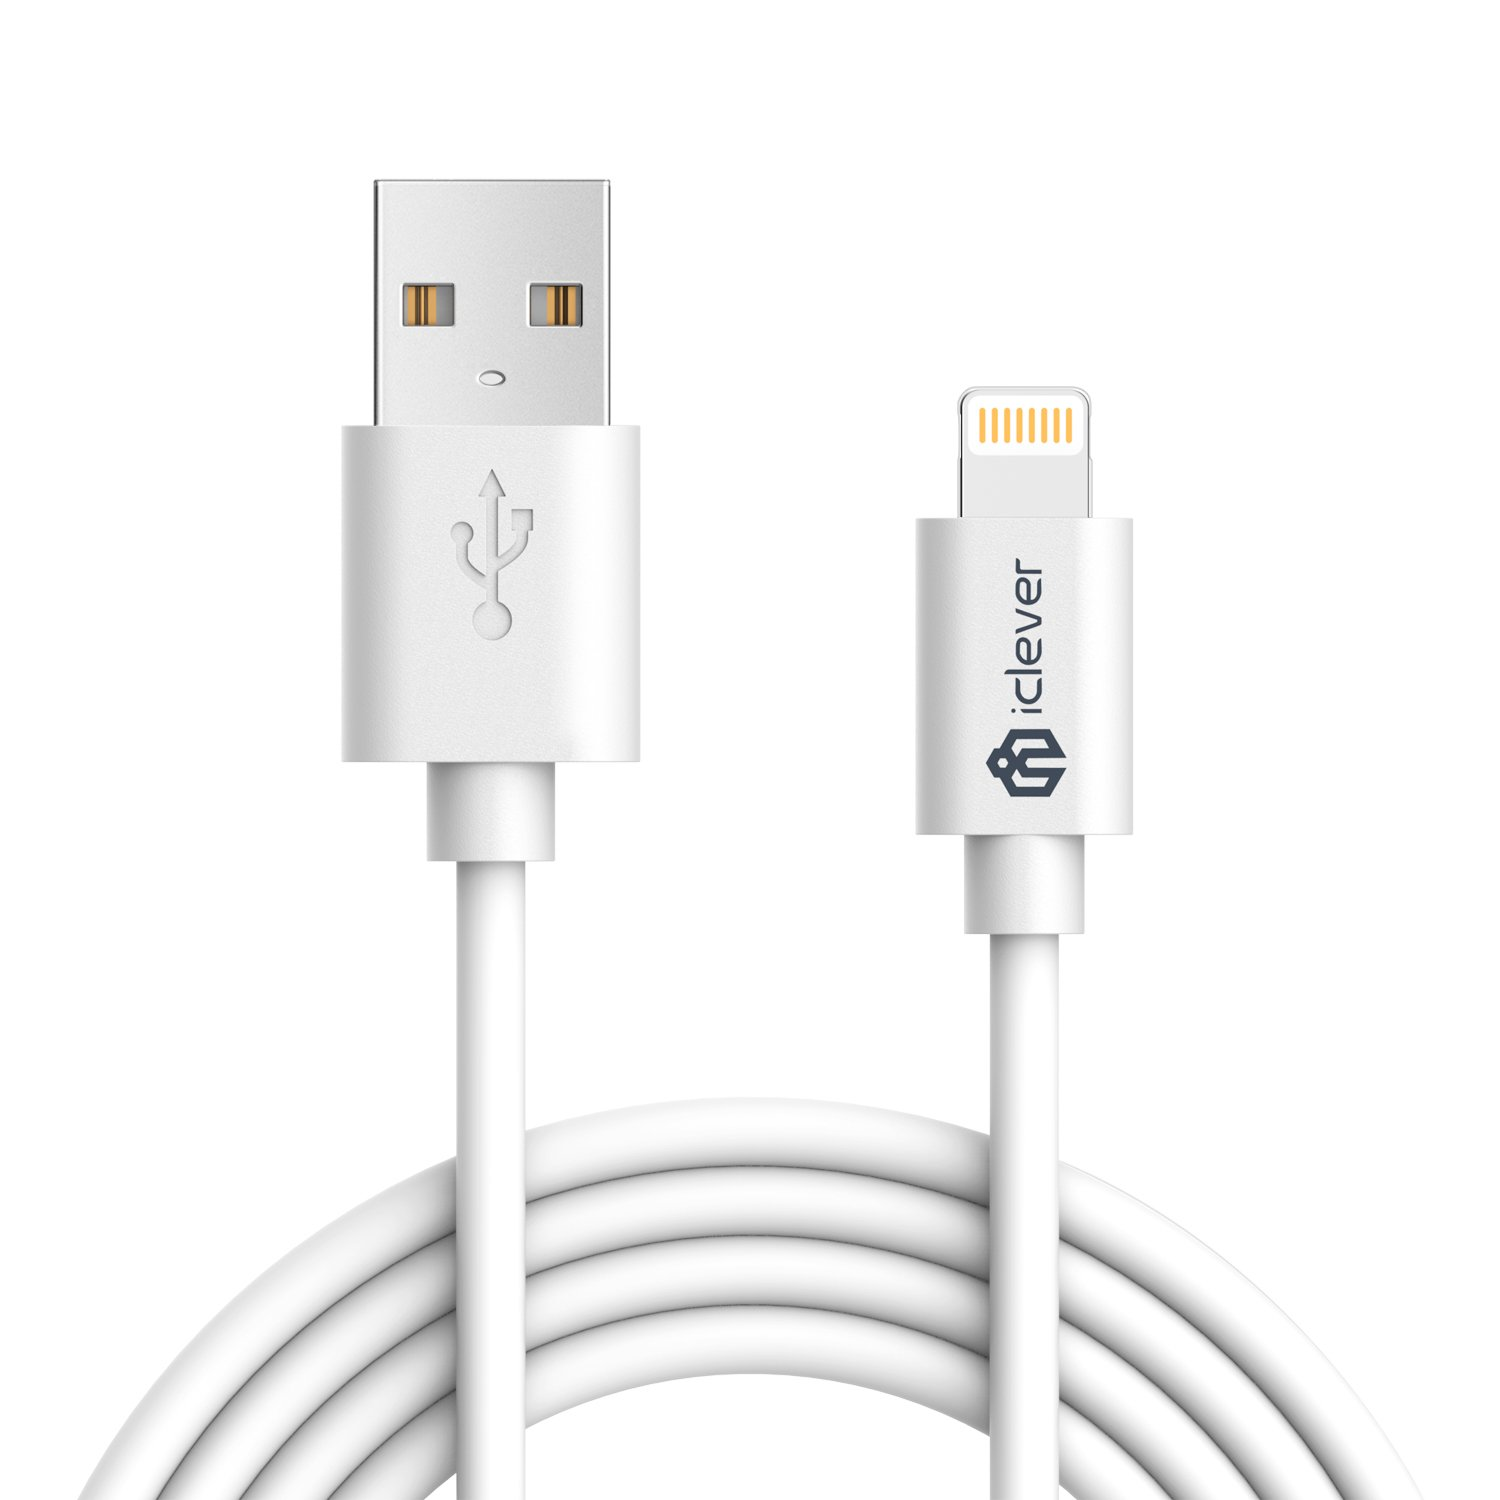 iClever 6ft iPhone Charger Cable,Apple MFi Certified Lightning to USB Cable with 8-Pin Ultra Compact Connector Head for iPhone Xs Max XR X 8 Plus 7 6 6s Plus 5s, iPad Air Mini Pro (White)